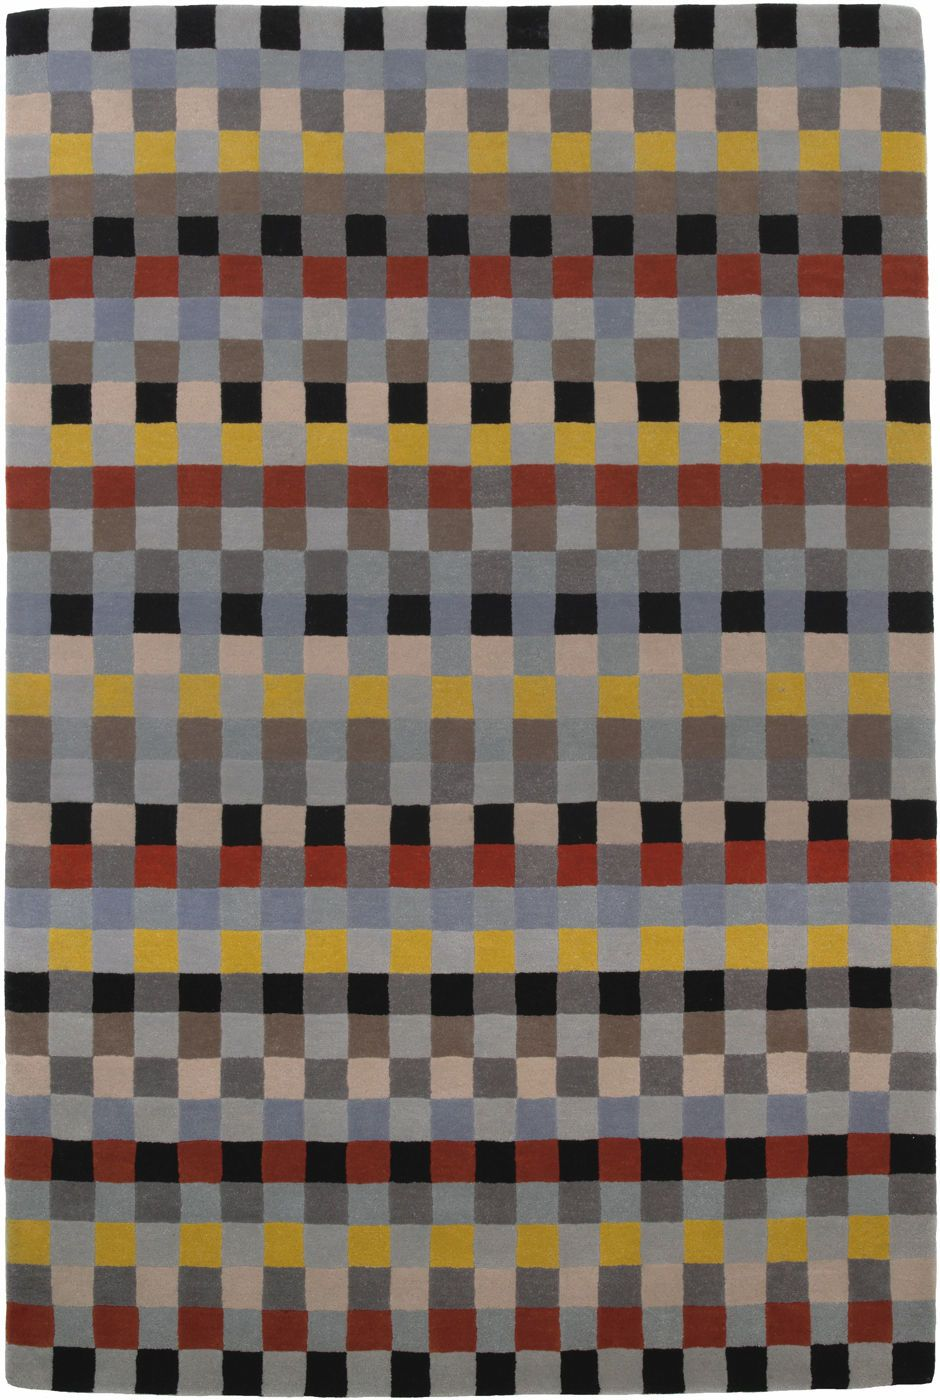 Anni Albers, Design for Rug, 1927, Harvard | Weave ...